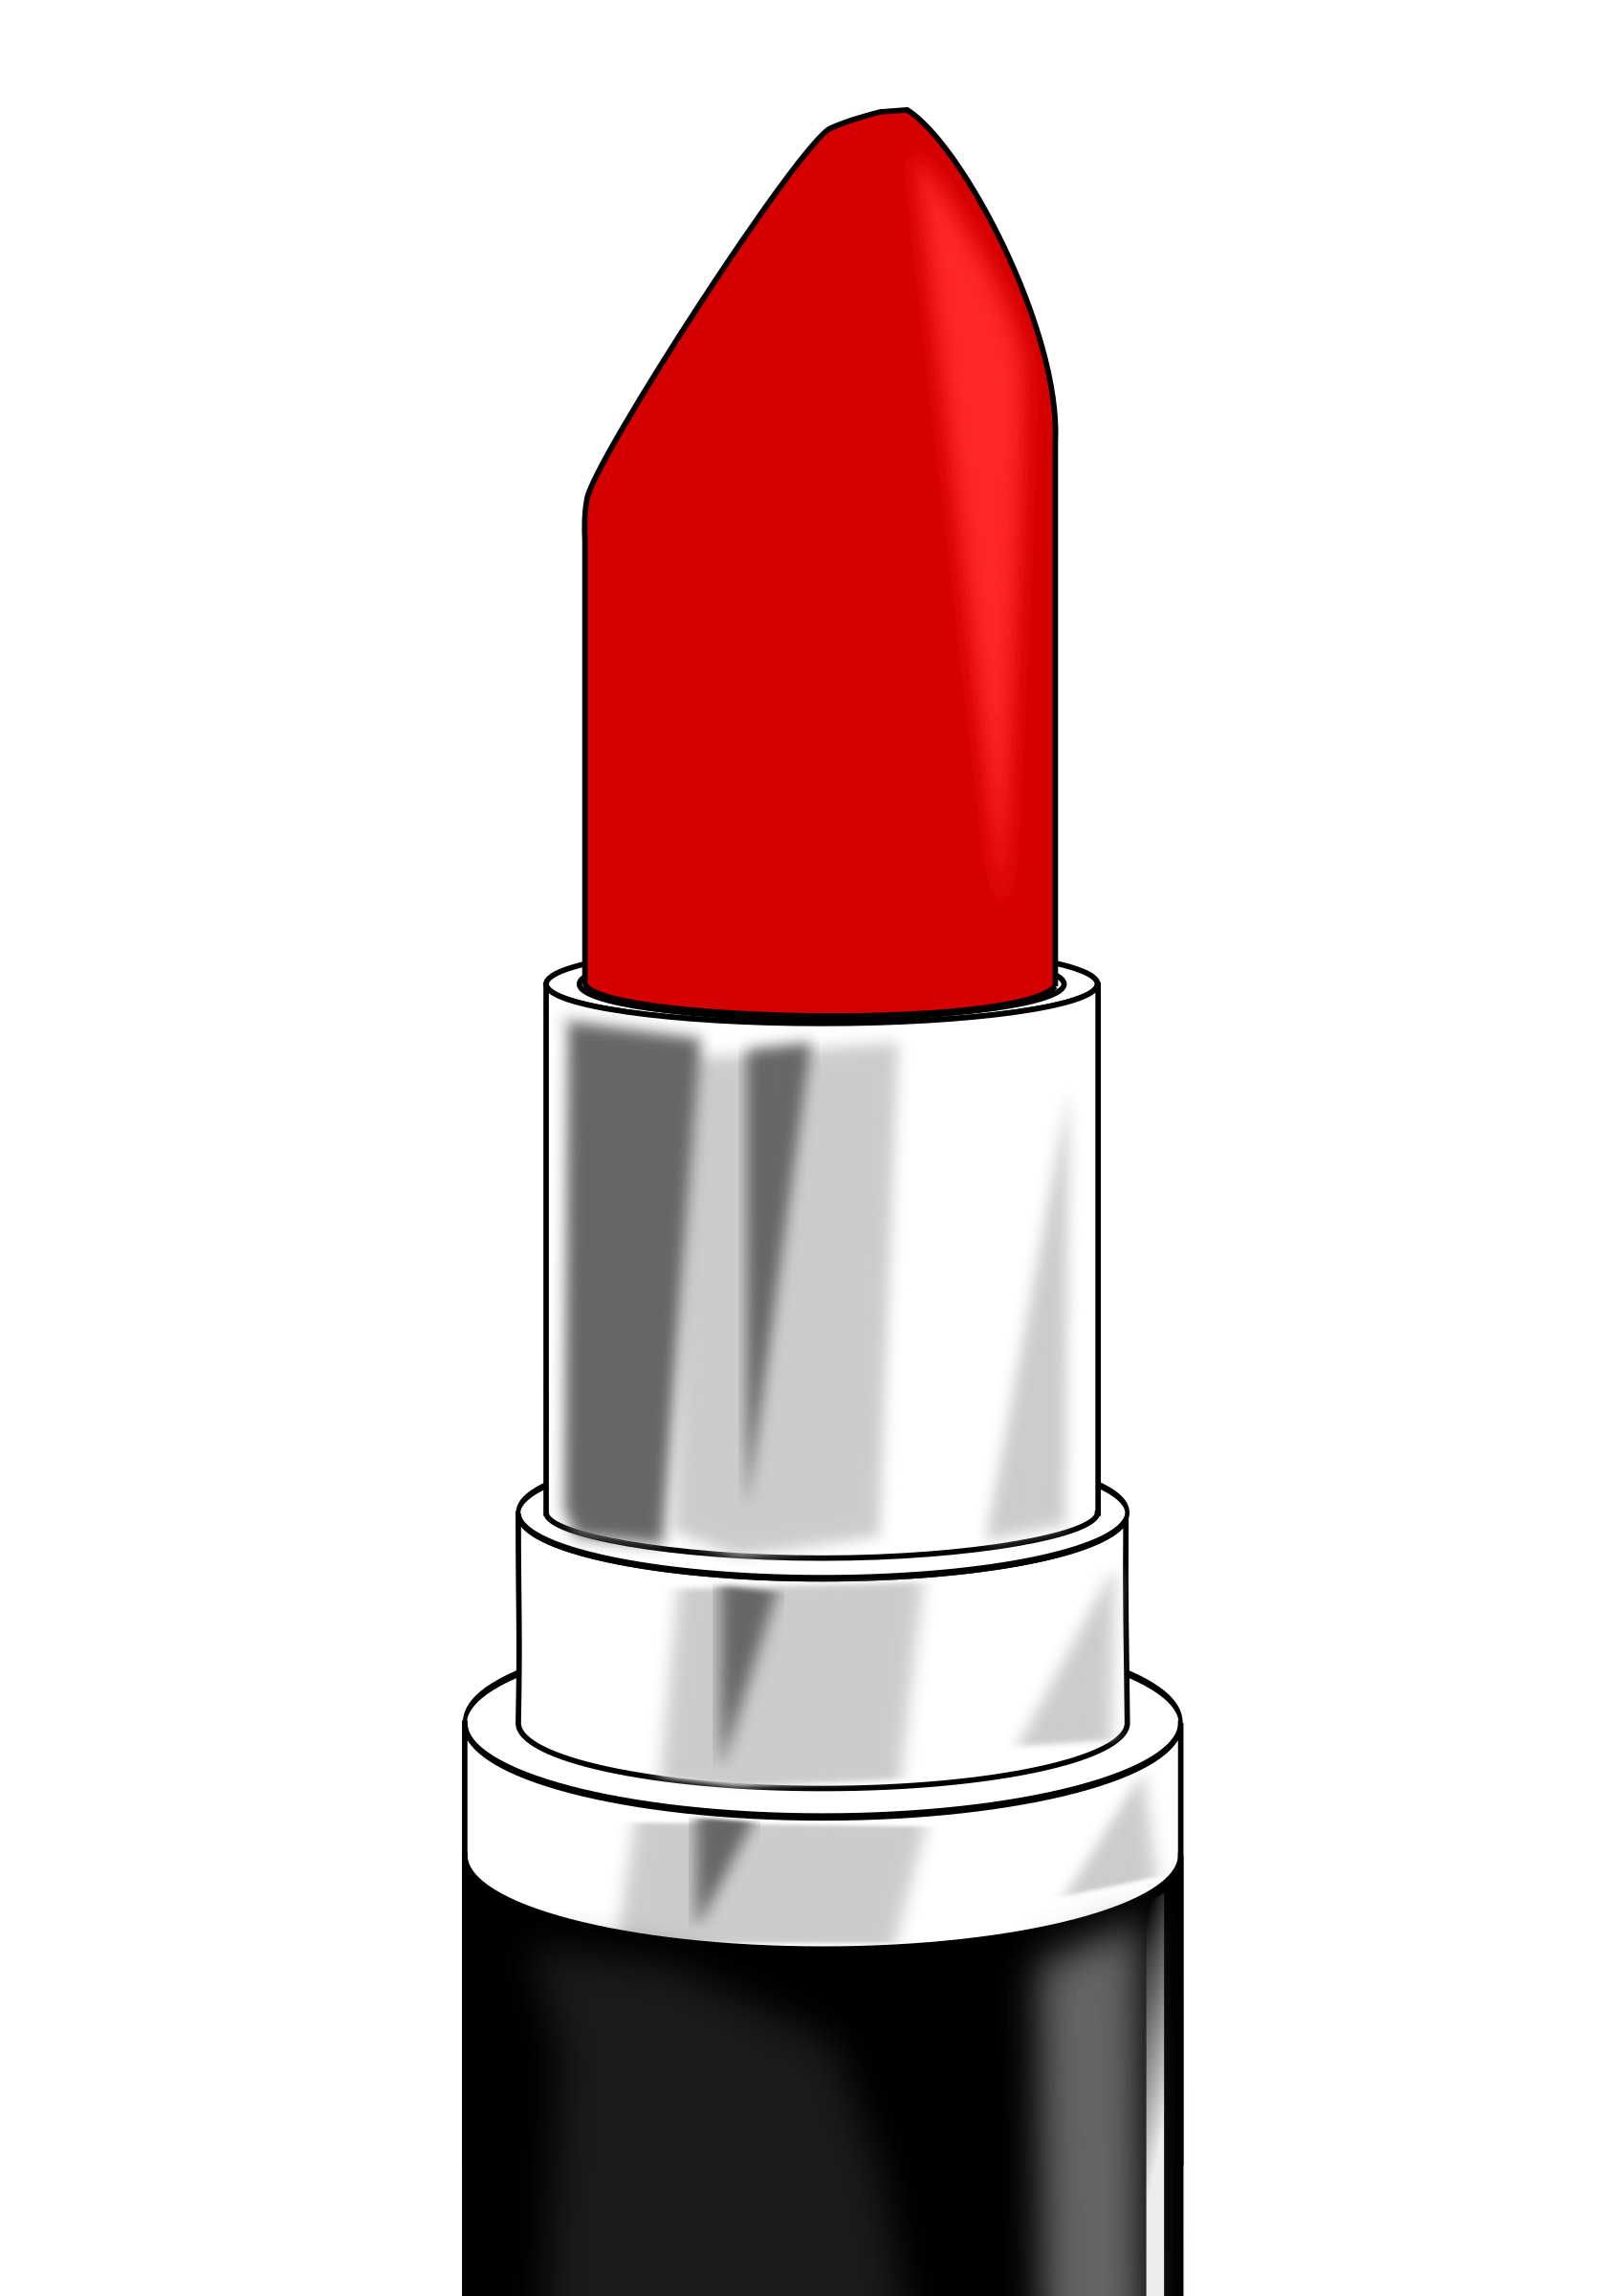 Lipstick clipart small Draw of Free Cartoon Lipstick